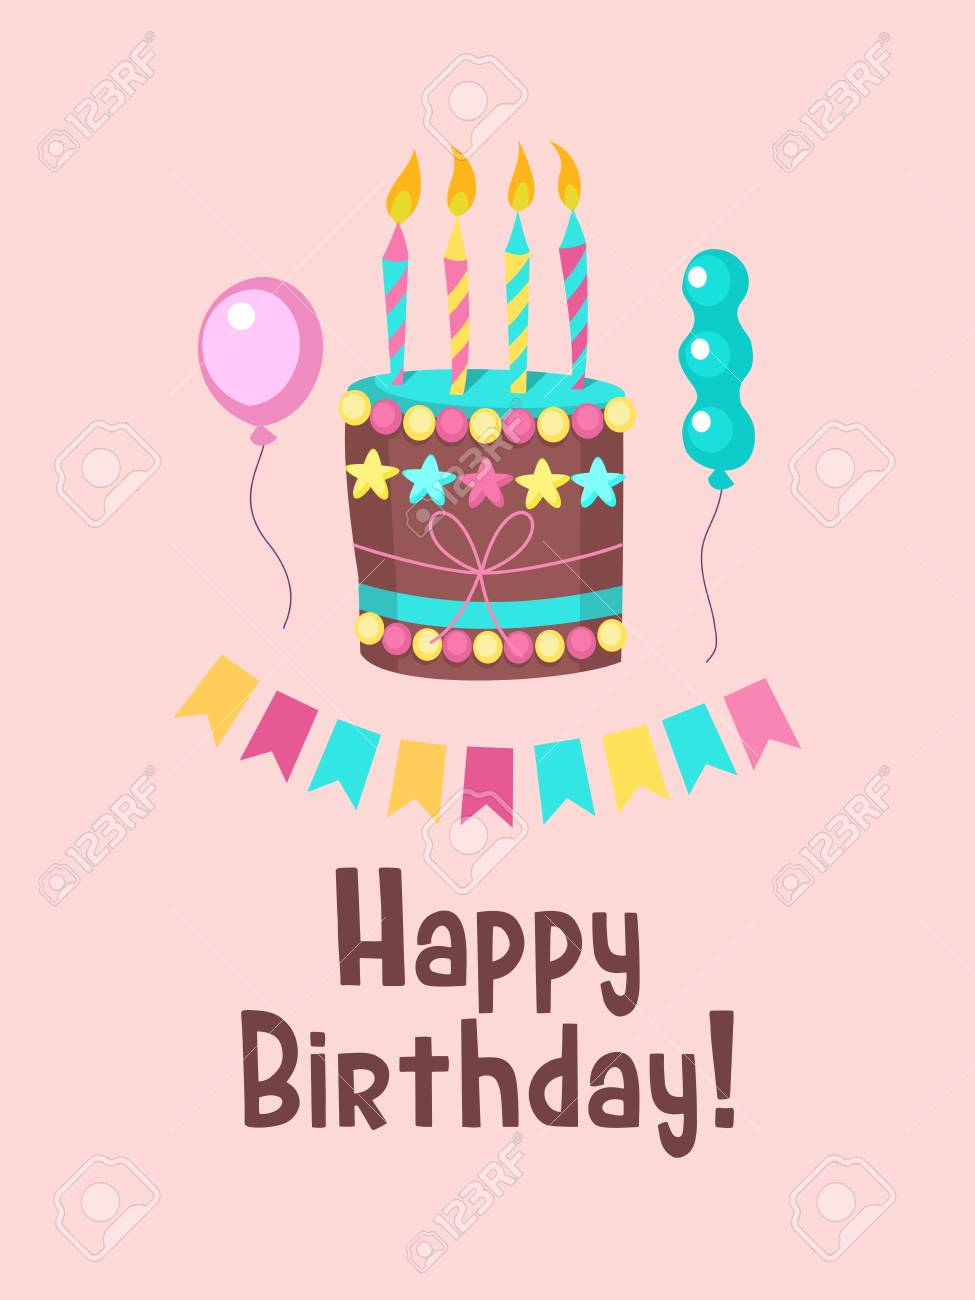 Happy birthday greeting card design of lovely birthday cake happy birthday greeting card design of lovely birthday cake with candles stock vector 97930148 m4hsunfo